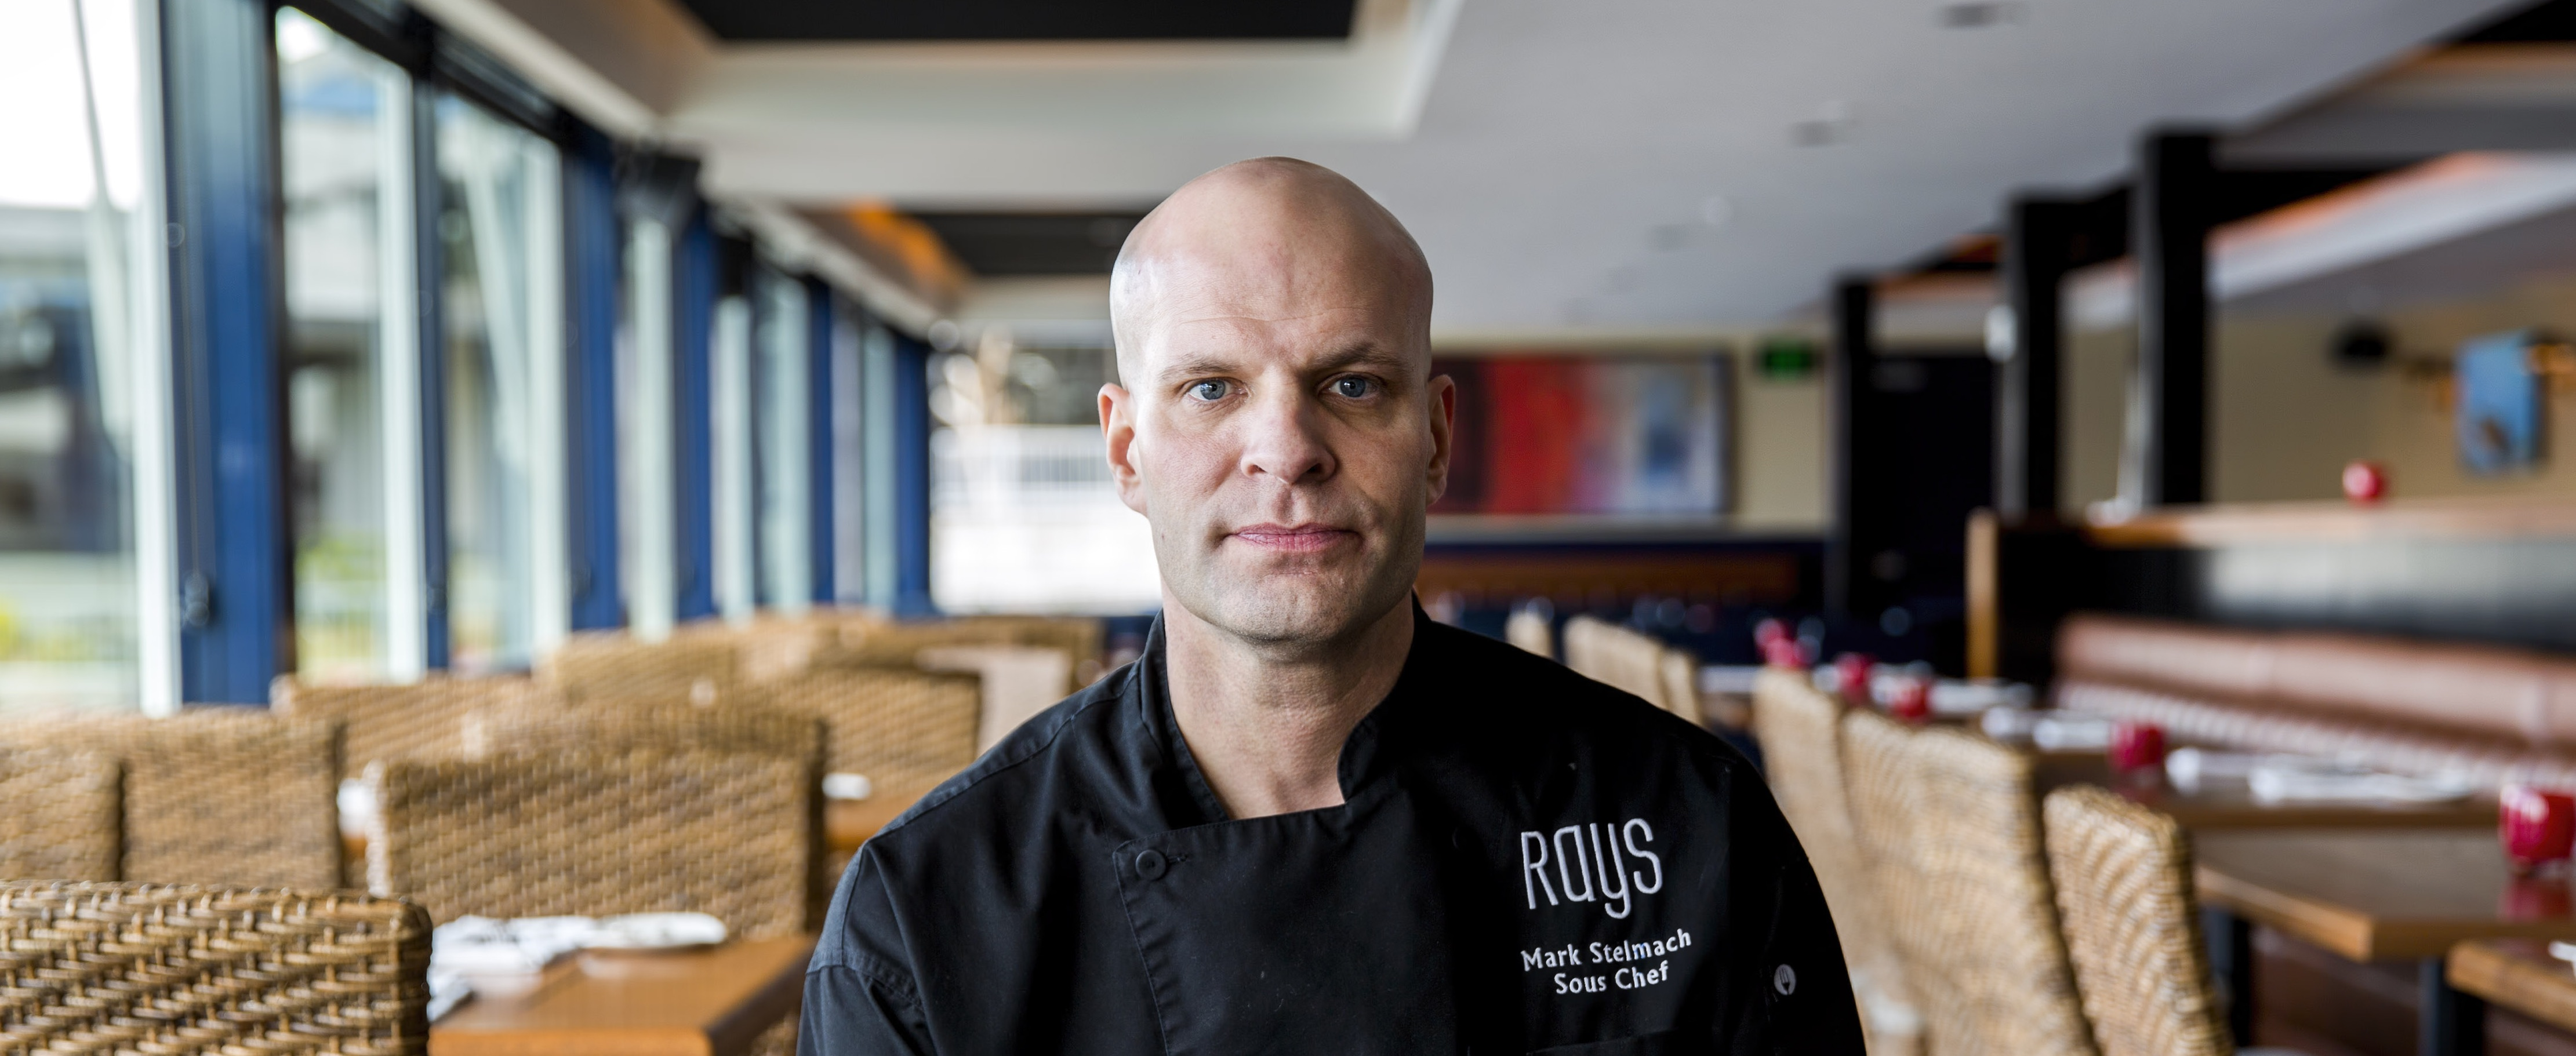 Mark Stelmach - Sous Chef